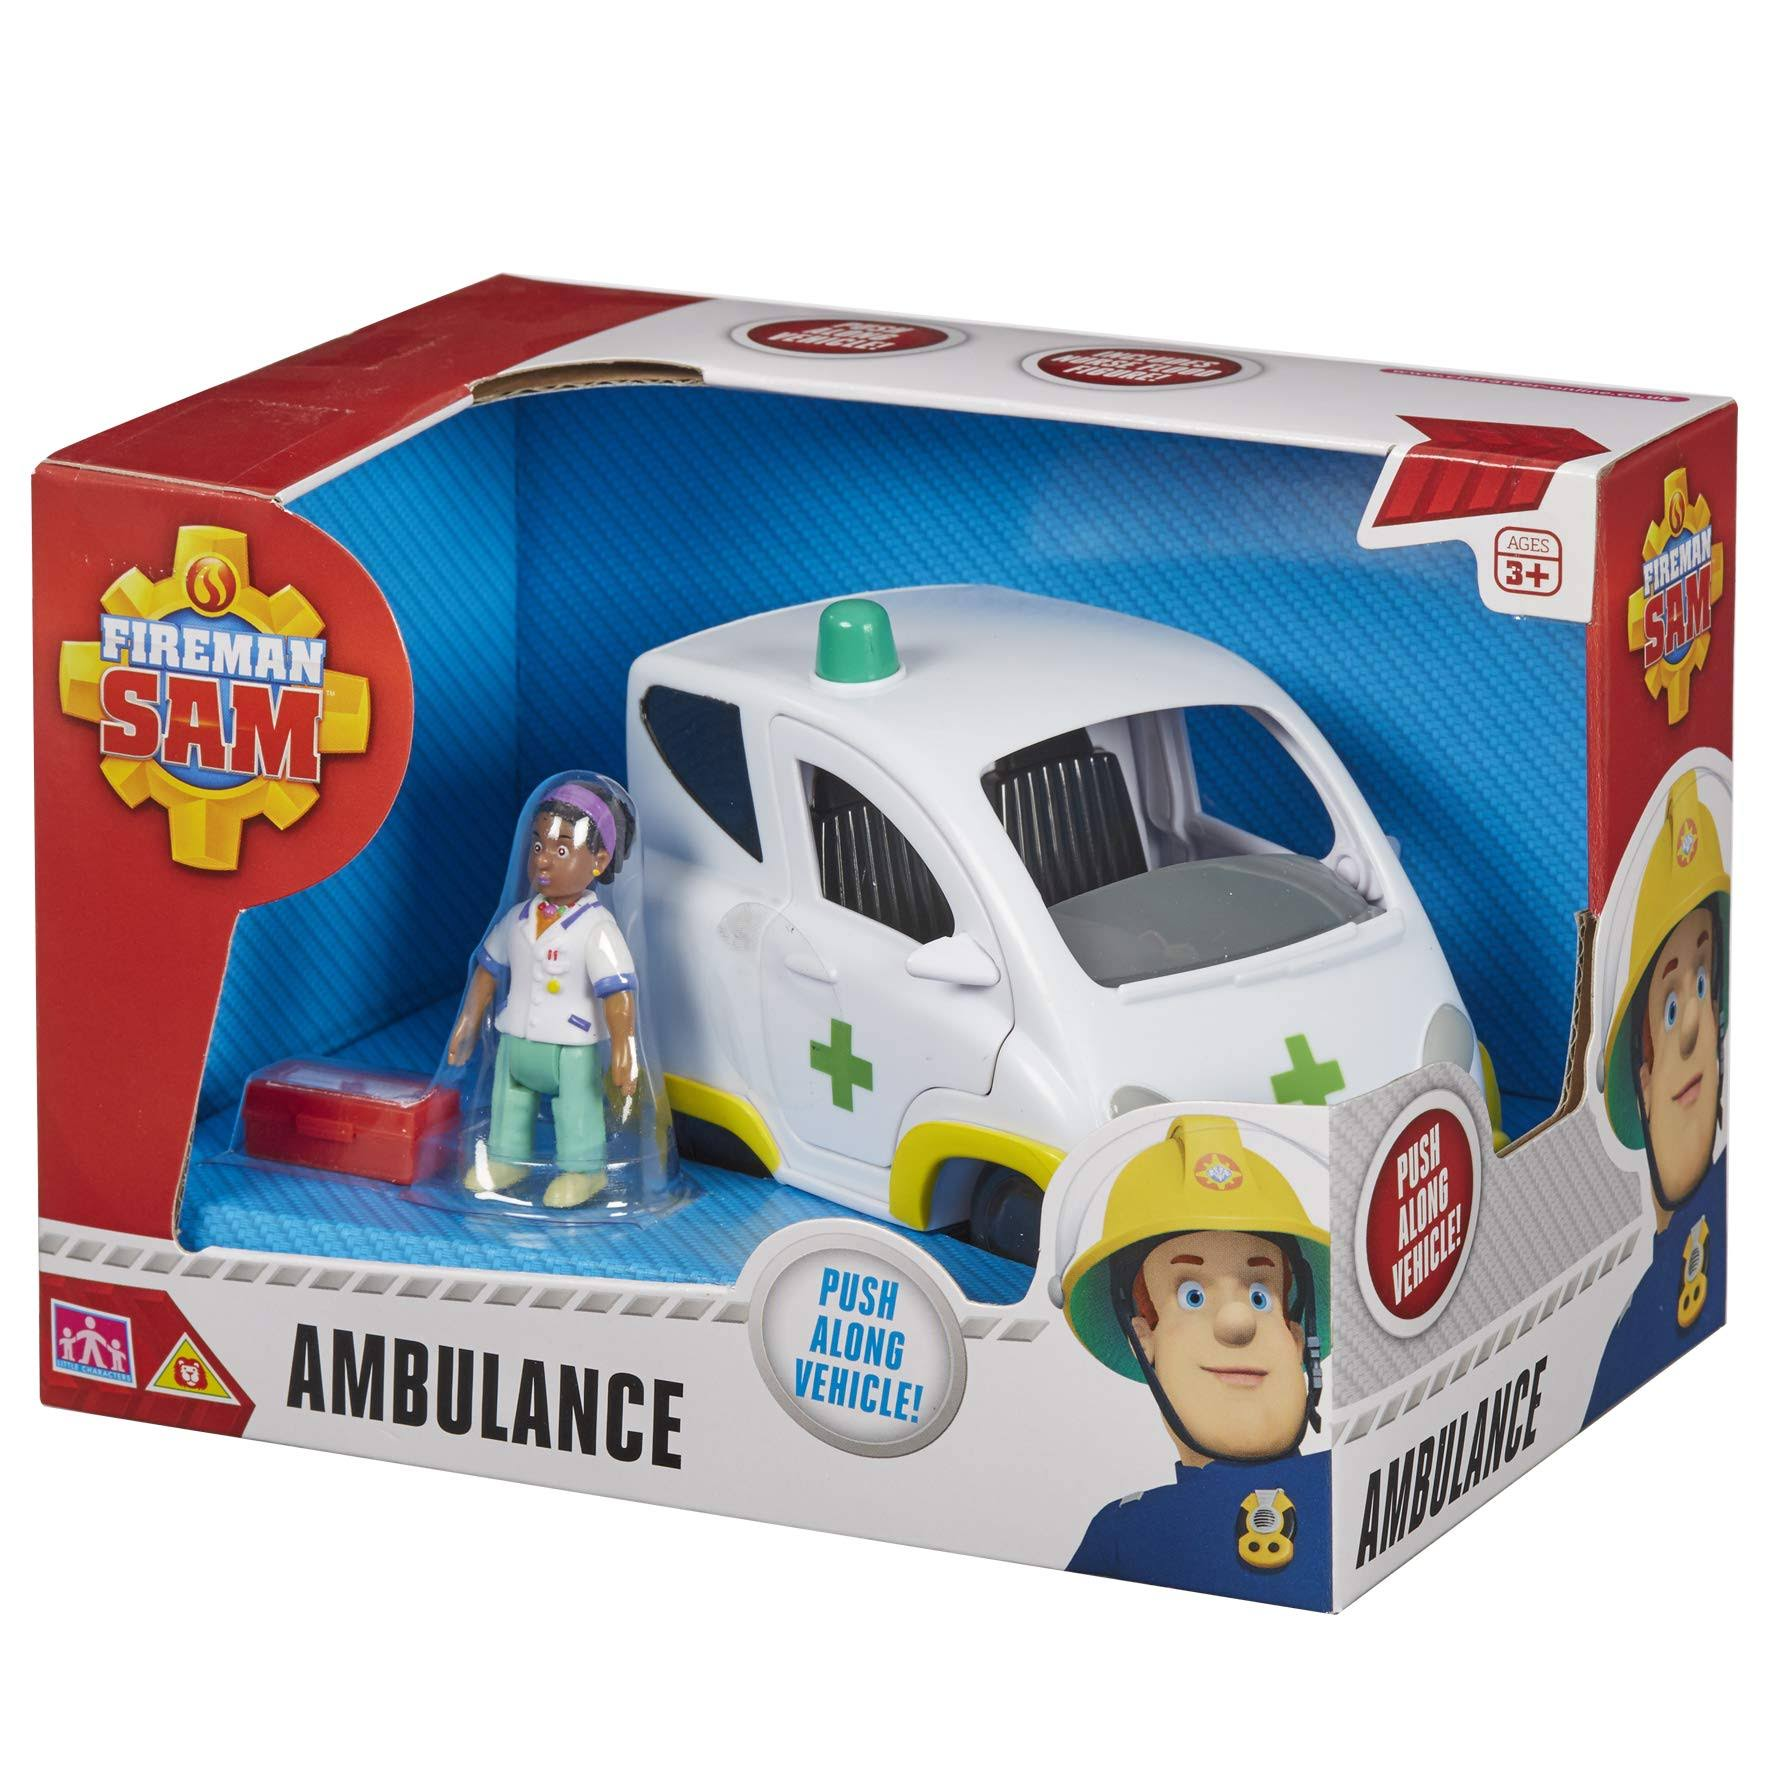 Fireman Sam Ambulance Vehicle Toy